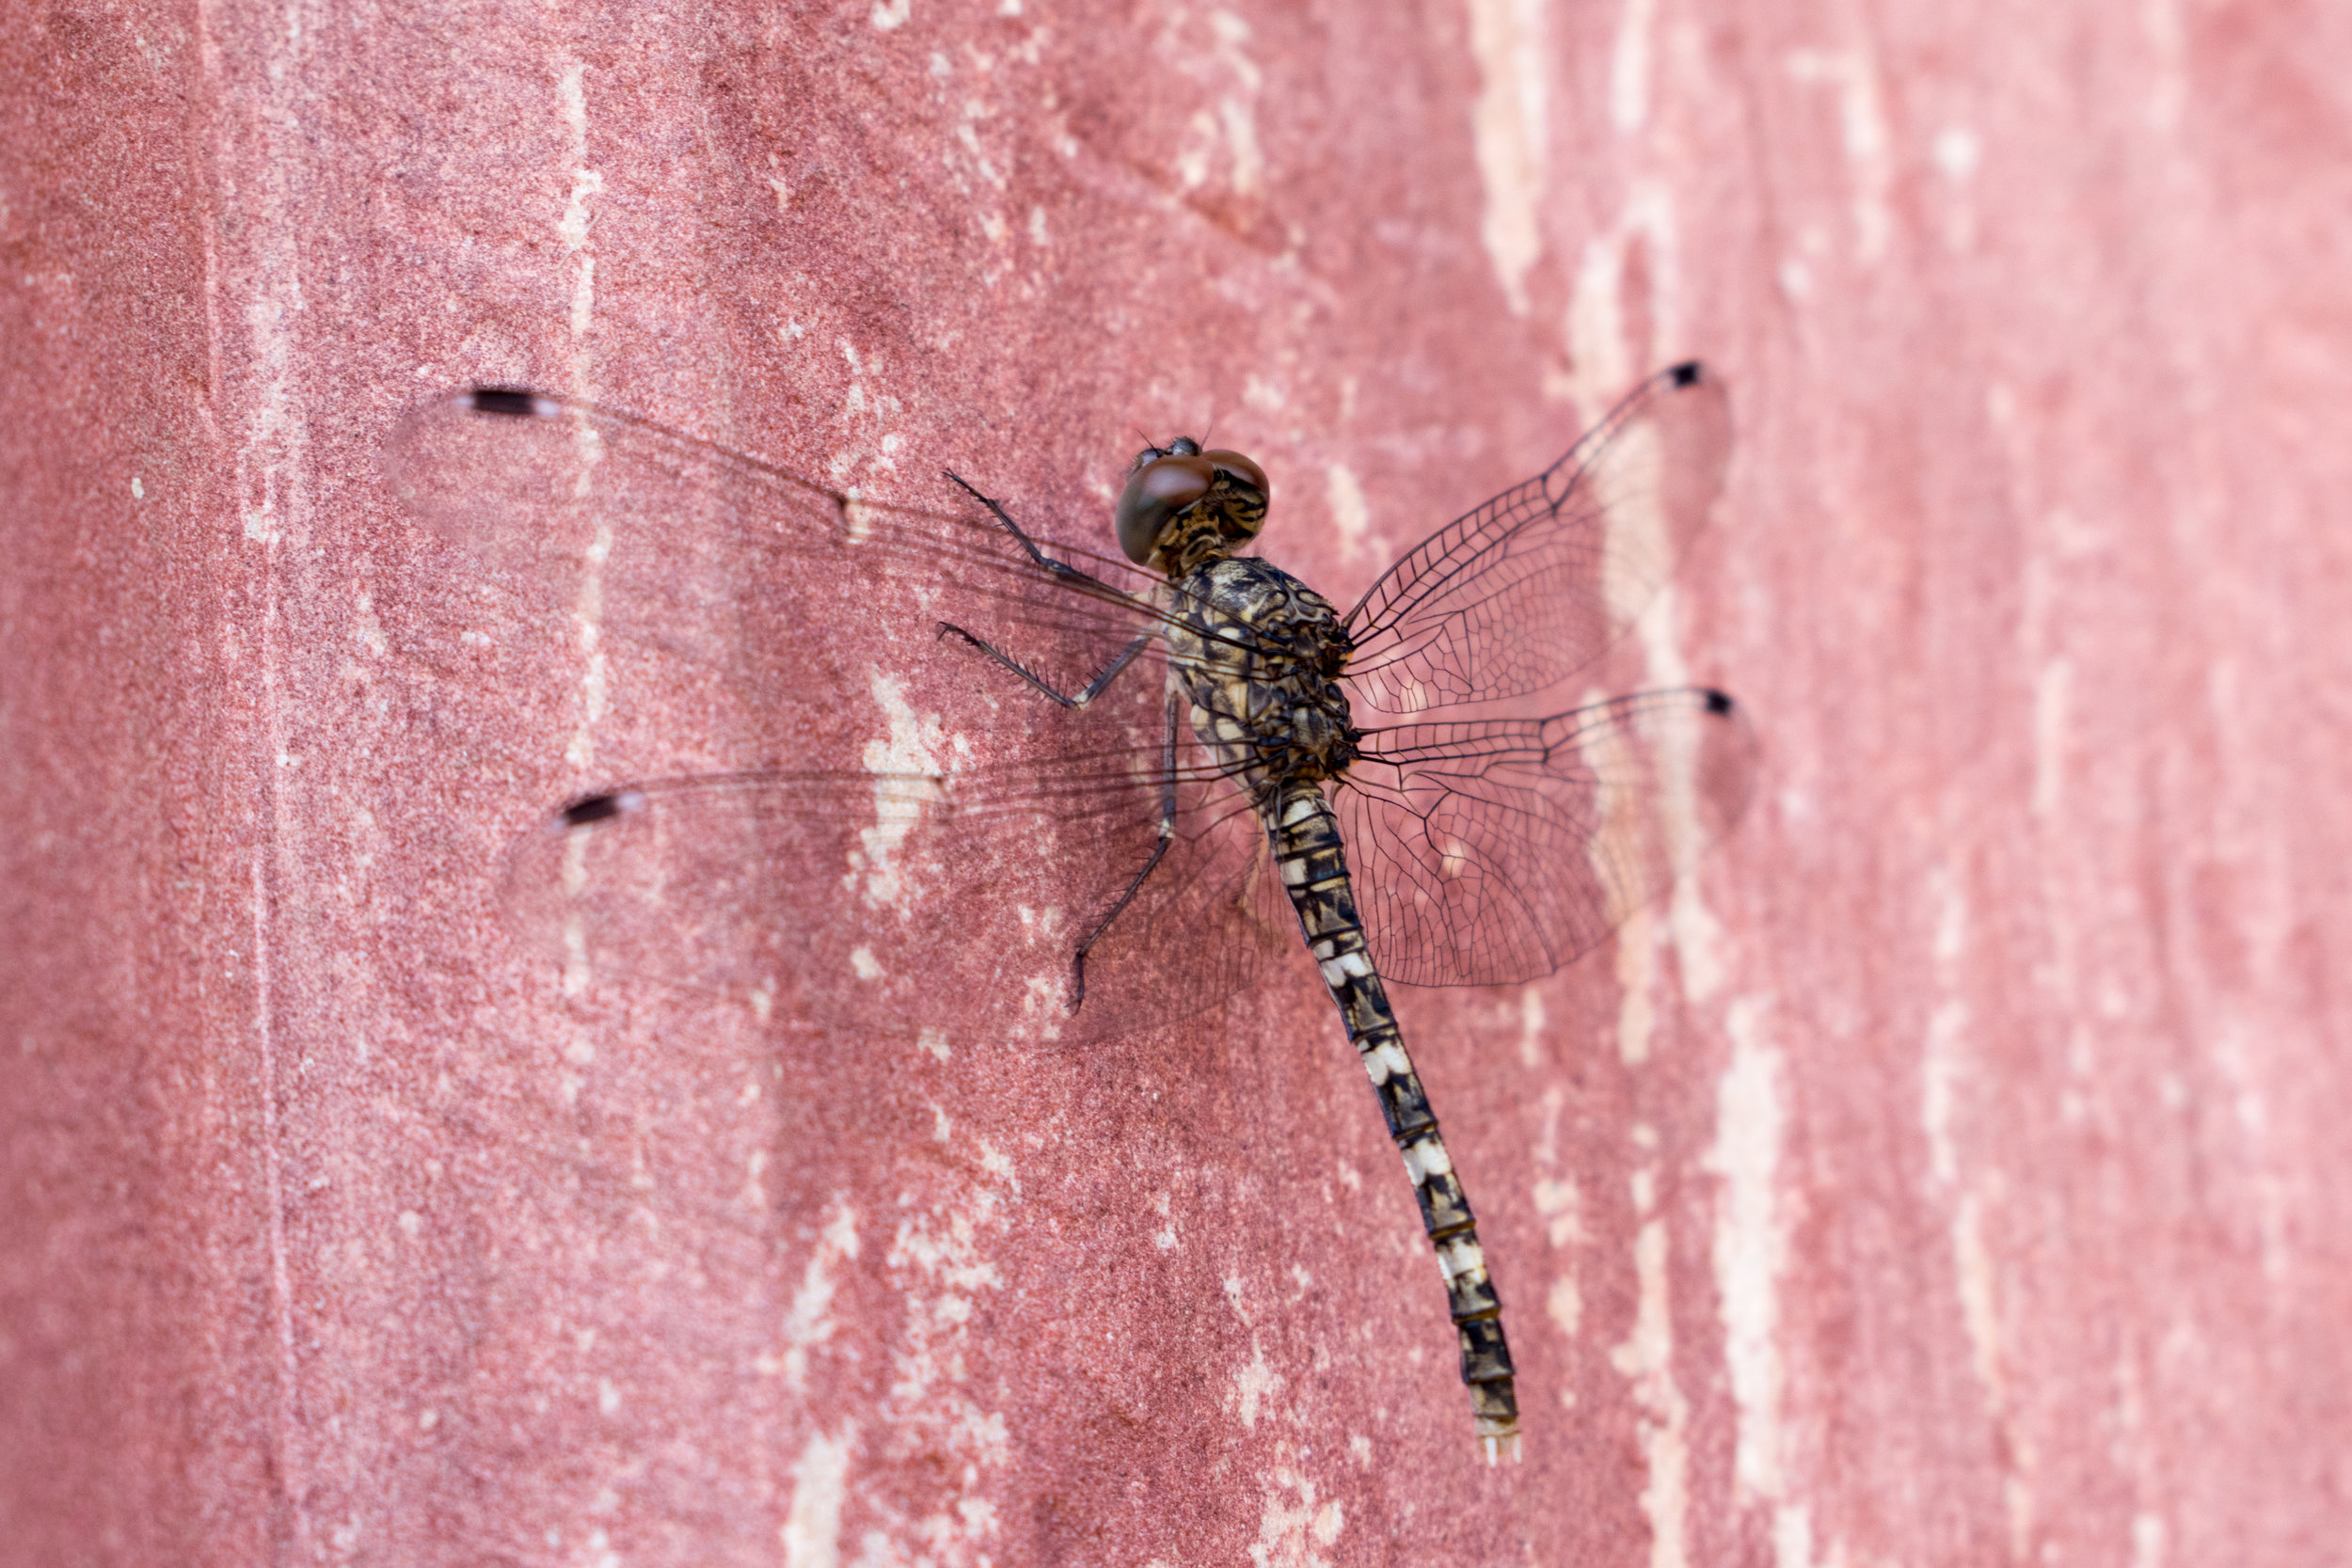 A Dragonfly on the Agra Fort Walls, India